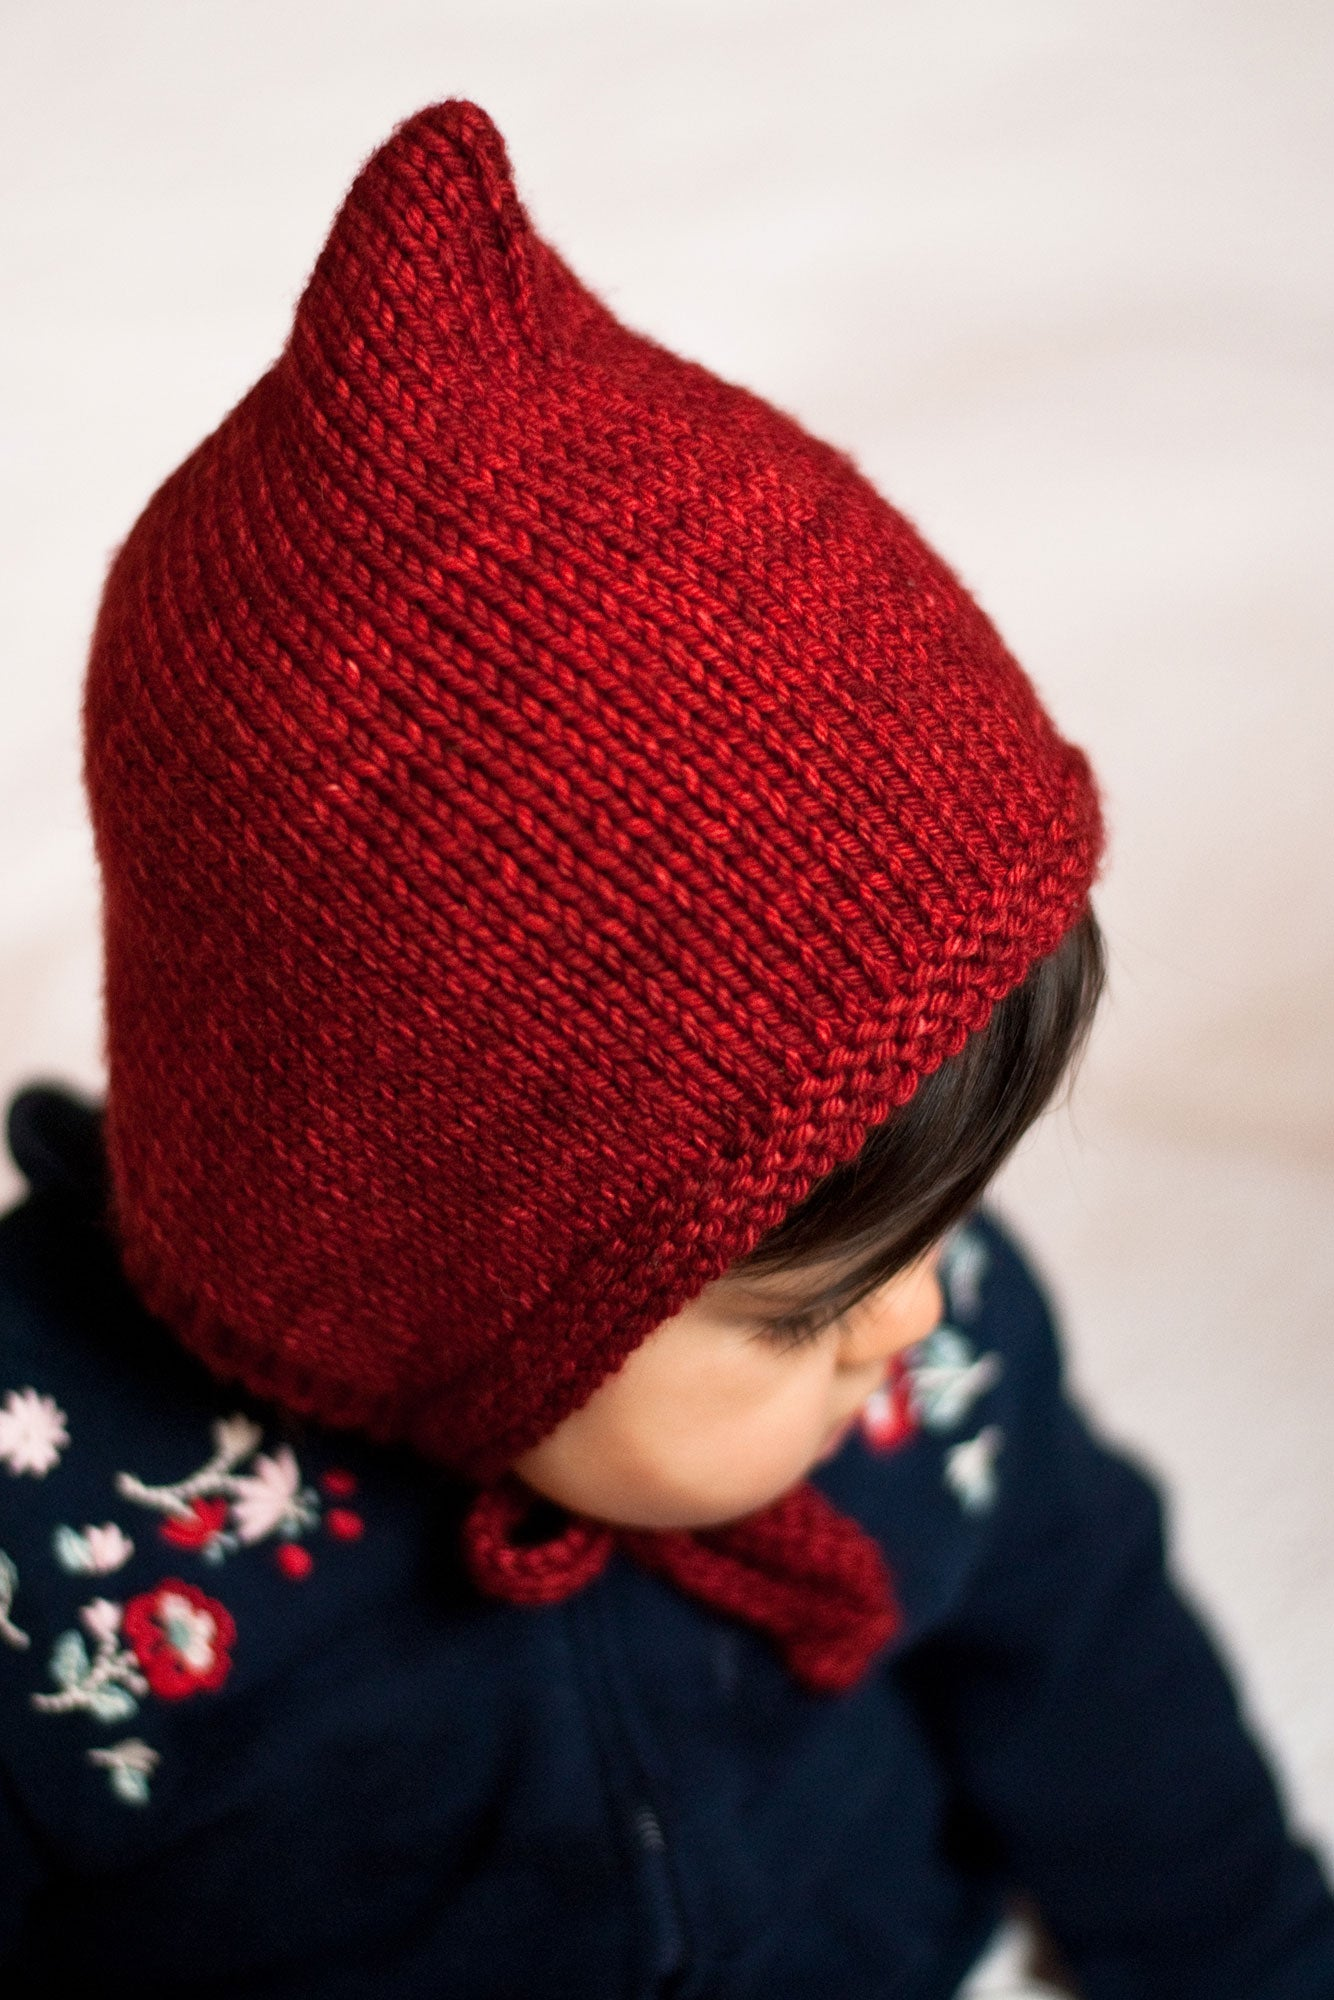 Hanabi hat knitting pattern - Sweet Paprika Designs